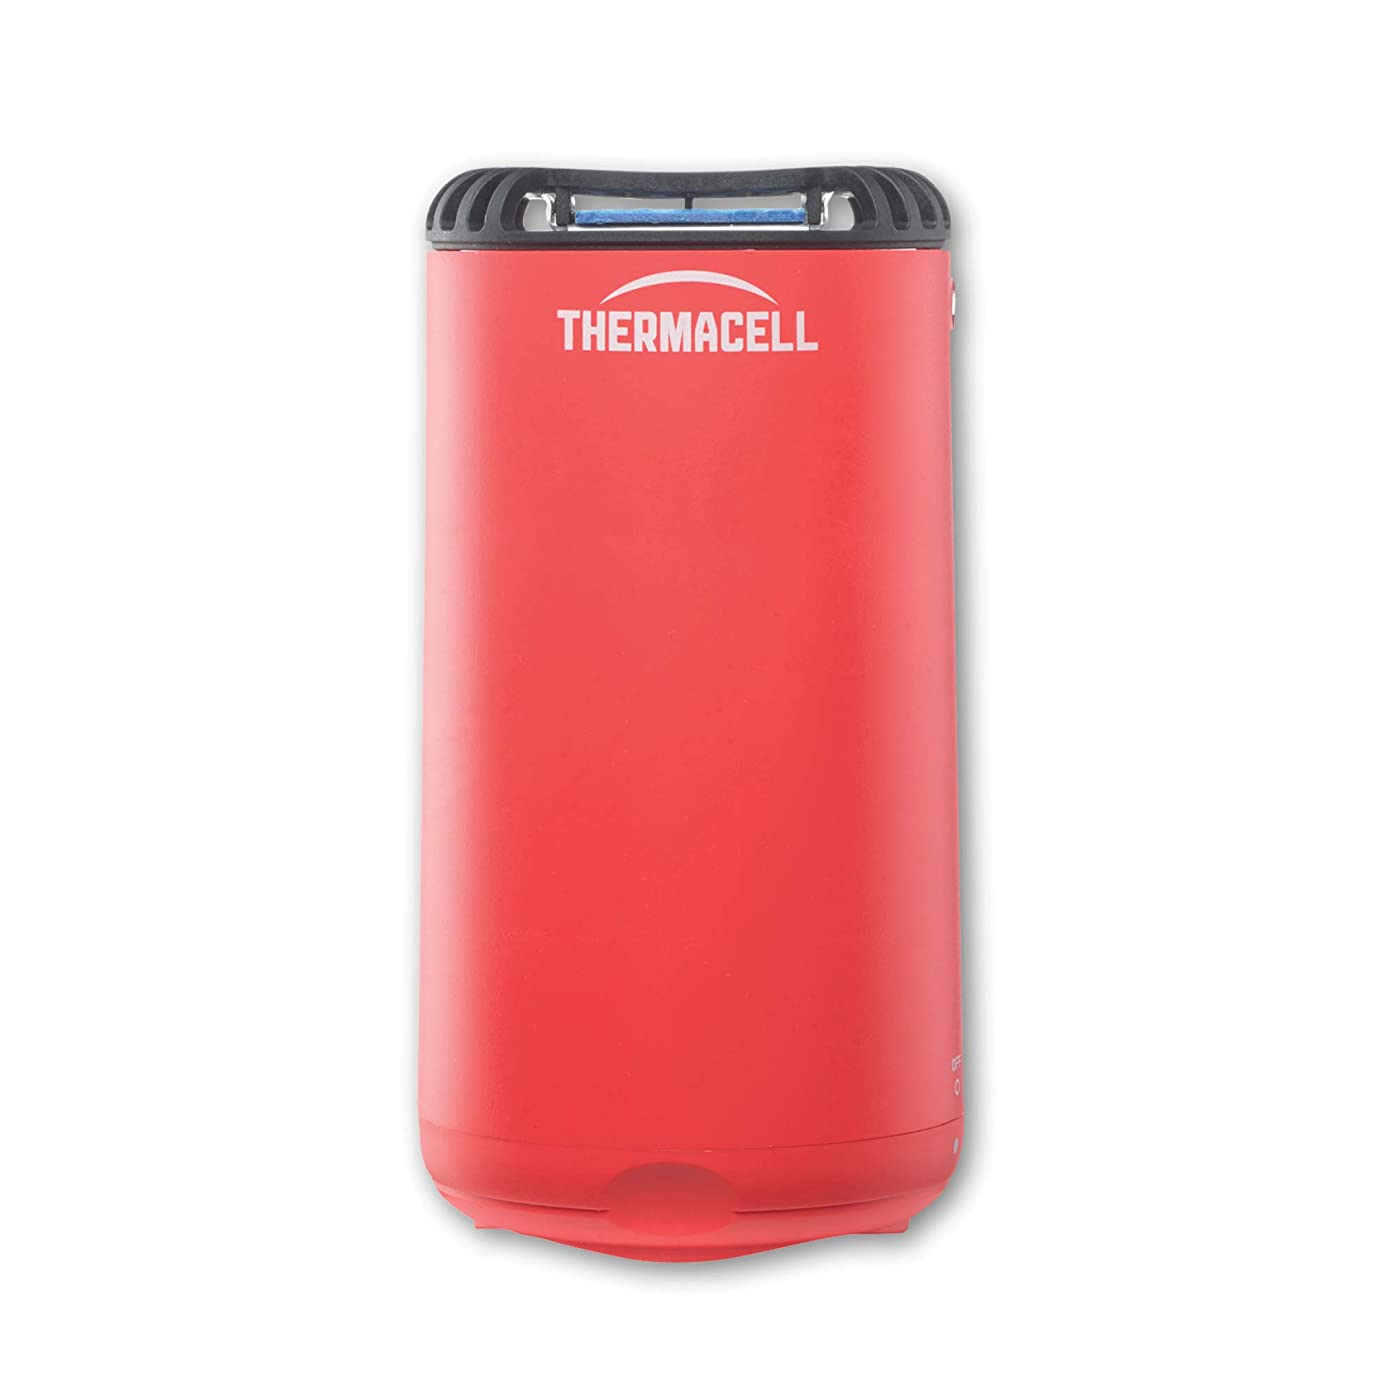 Thermacell Patio Shield Mosquito Repeller, Fiesta Red; Easy to Use, Highly Effective; Provides 12 Hours of DEET-Free Mosquito Repellent; Scent-Free, No Spray, No Smoke and Cordless